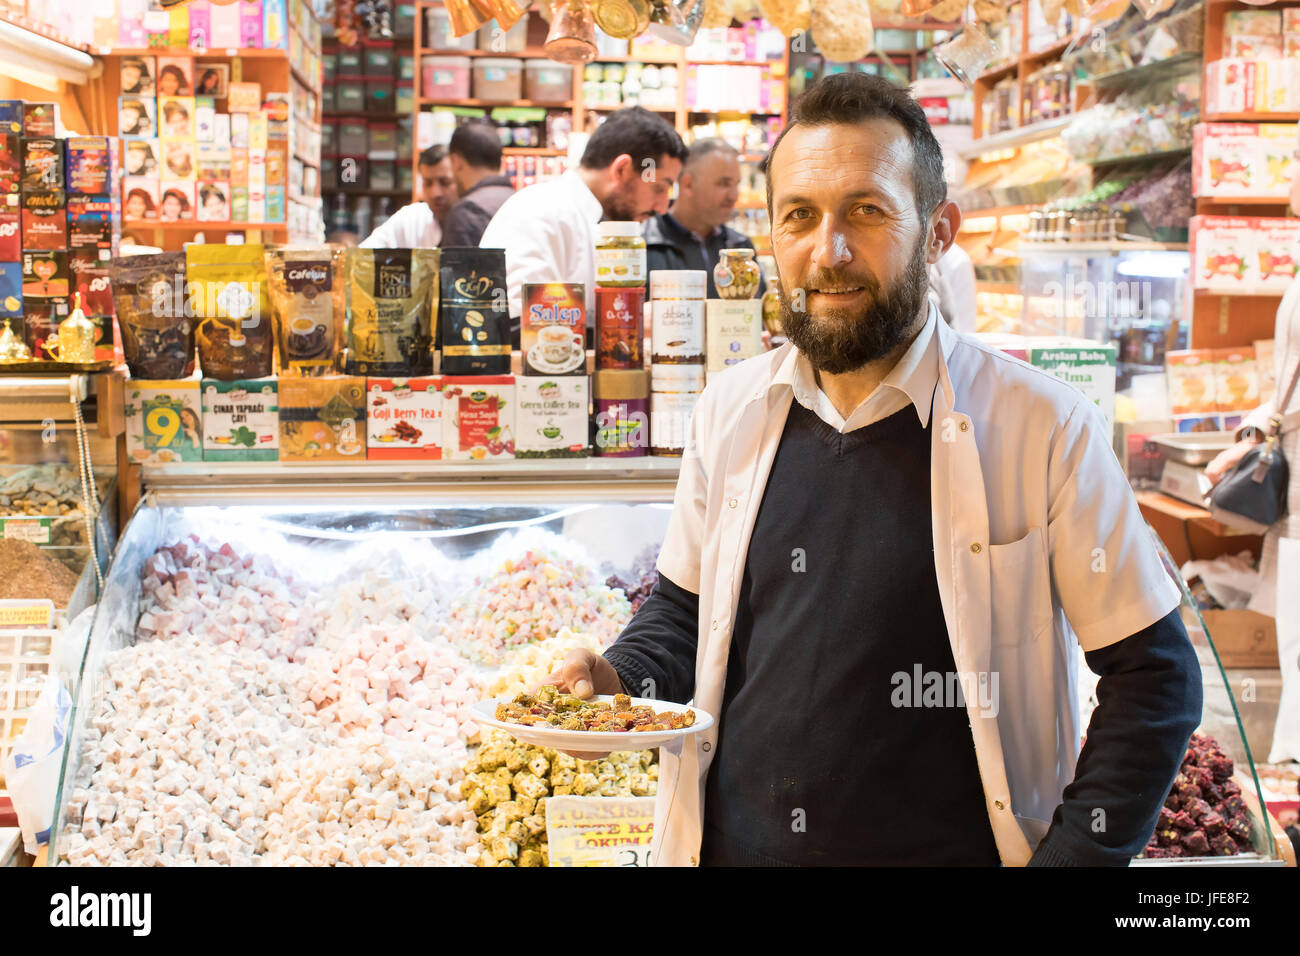 5f8ad745cdfe8 Famous Sweets In Turkey Stock Photos   Famous Sweets In Turkey Stock ...